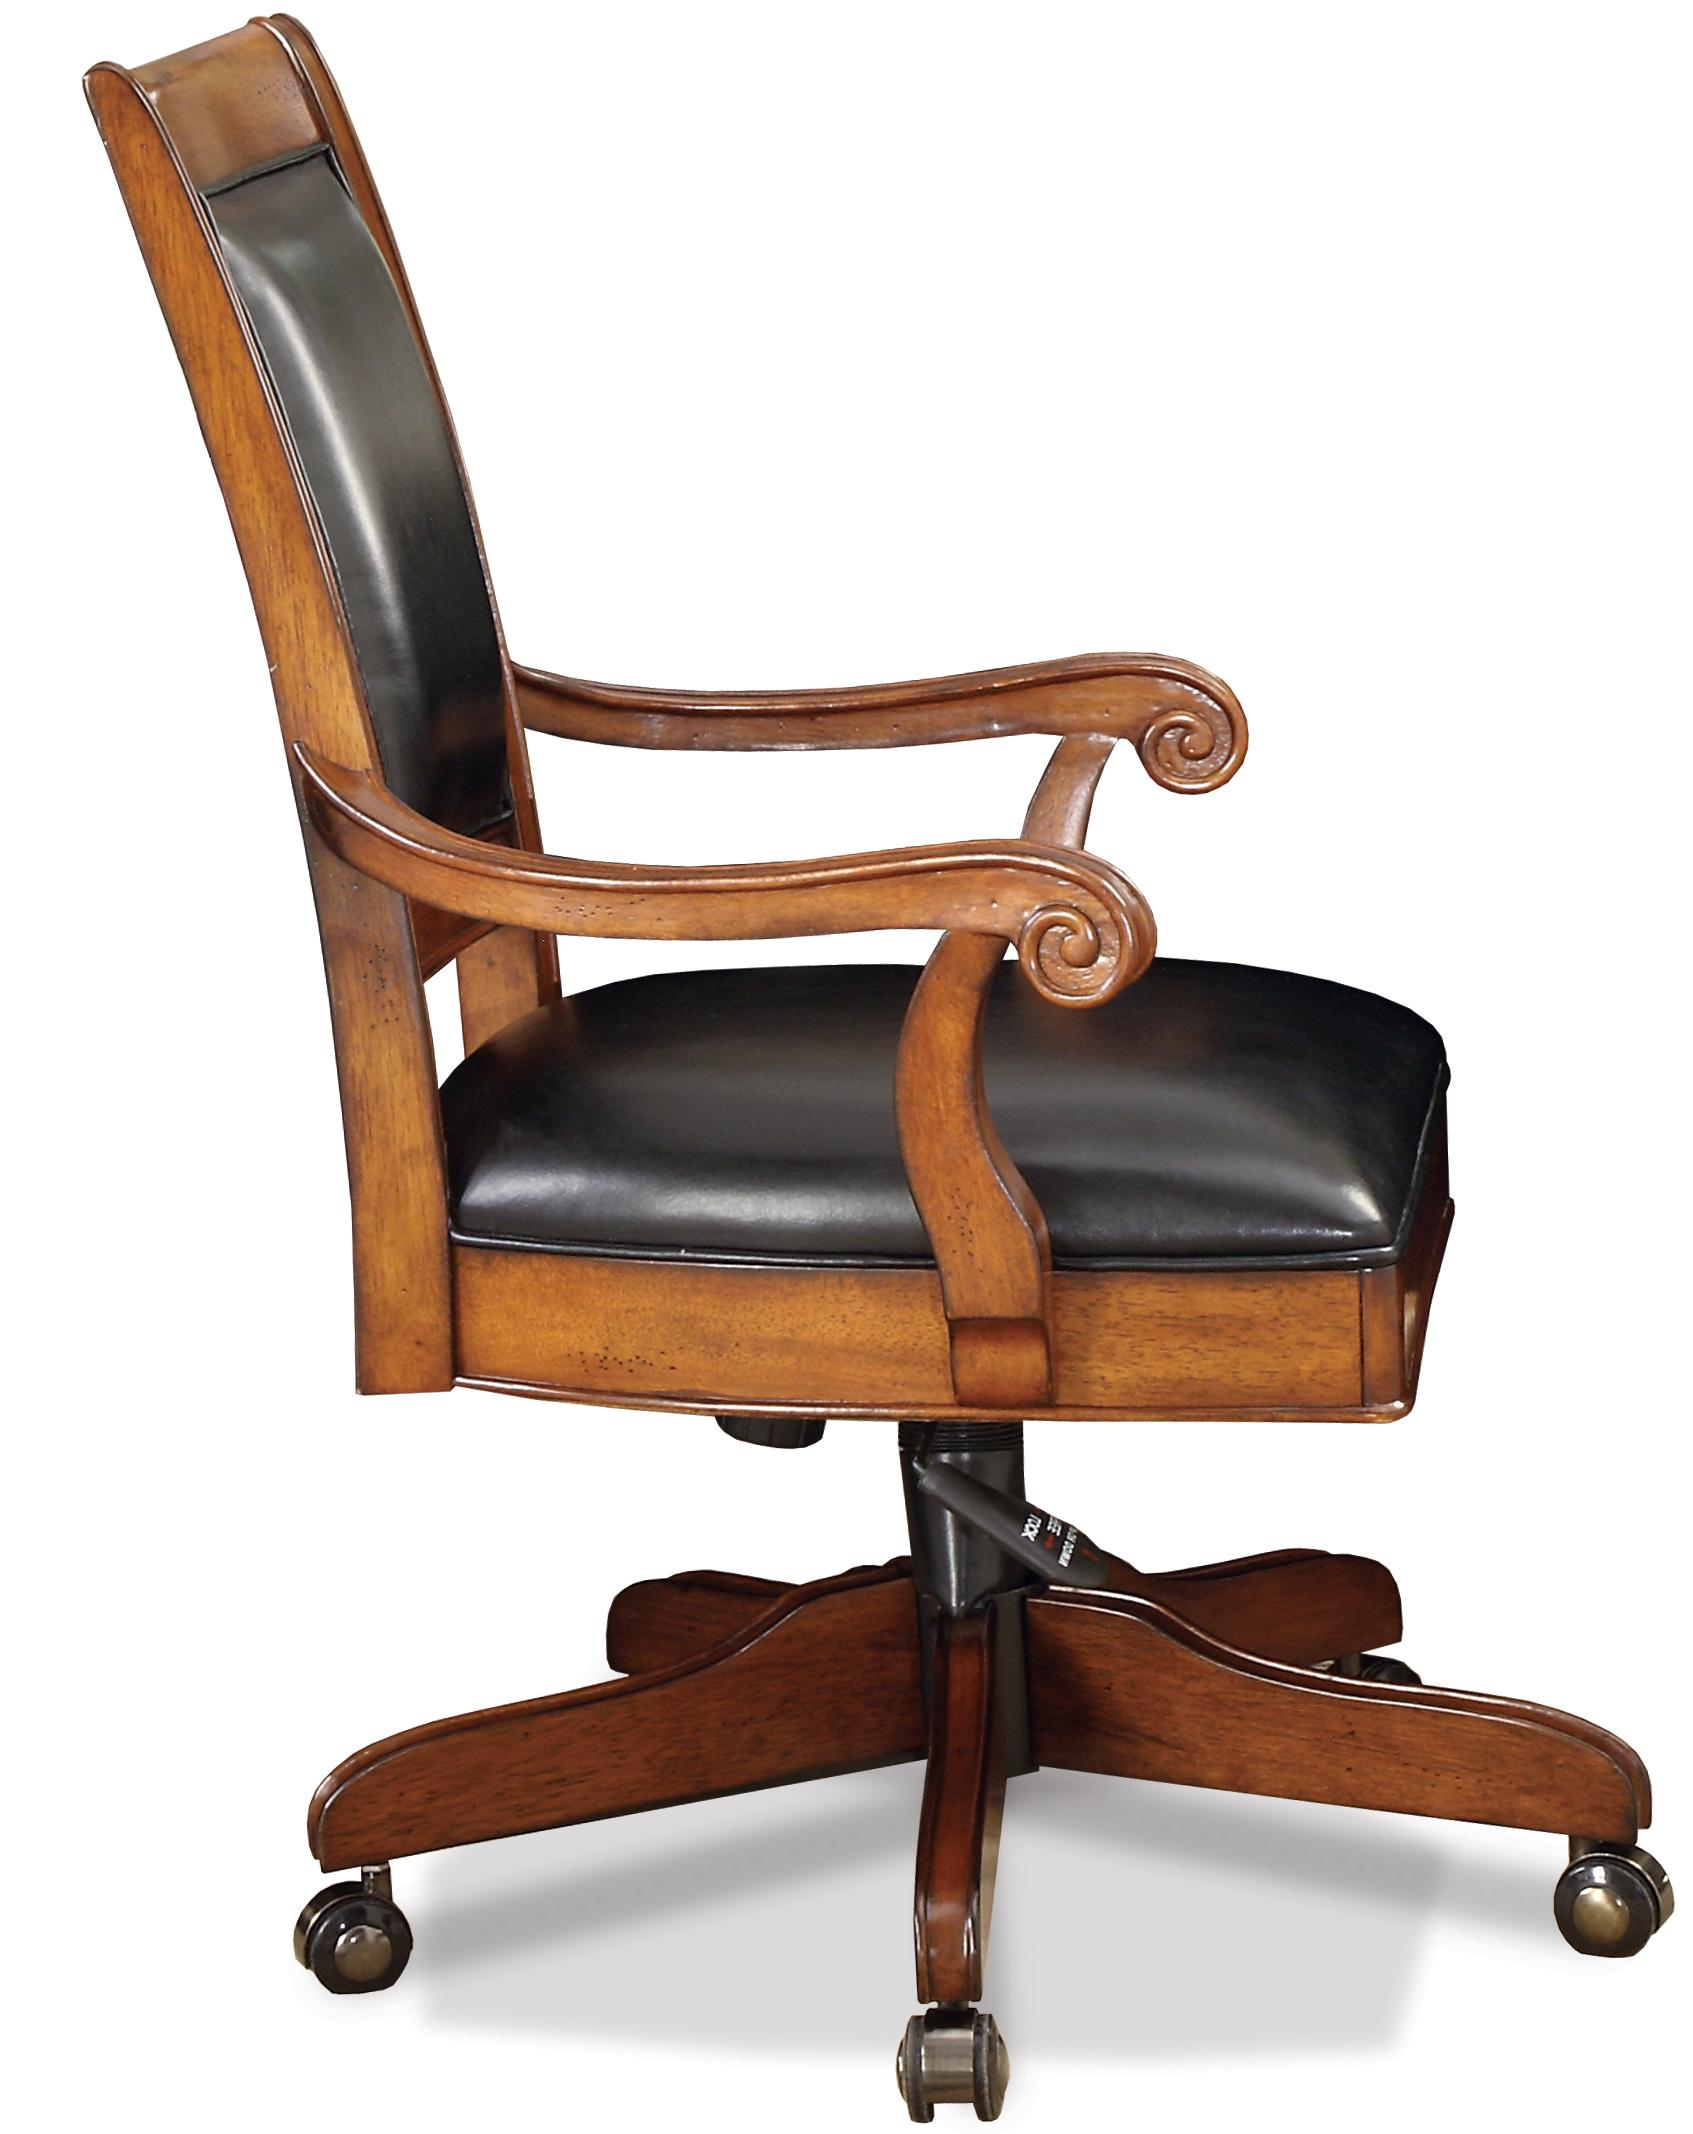 Riverside Furniture Cantata Executive Desk Chair - Item Number: 4925